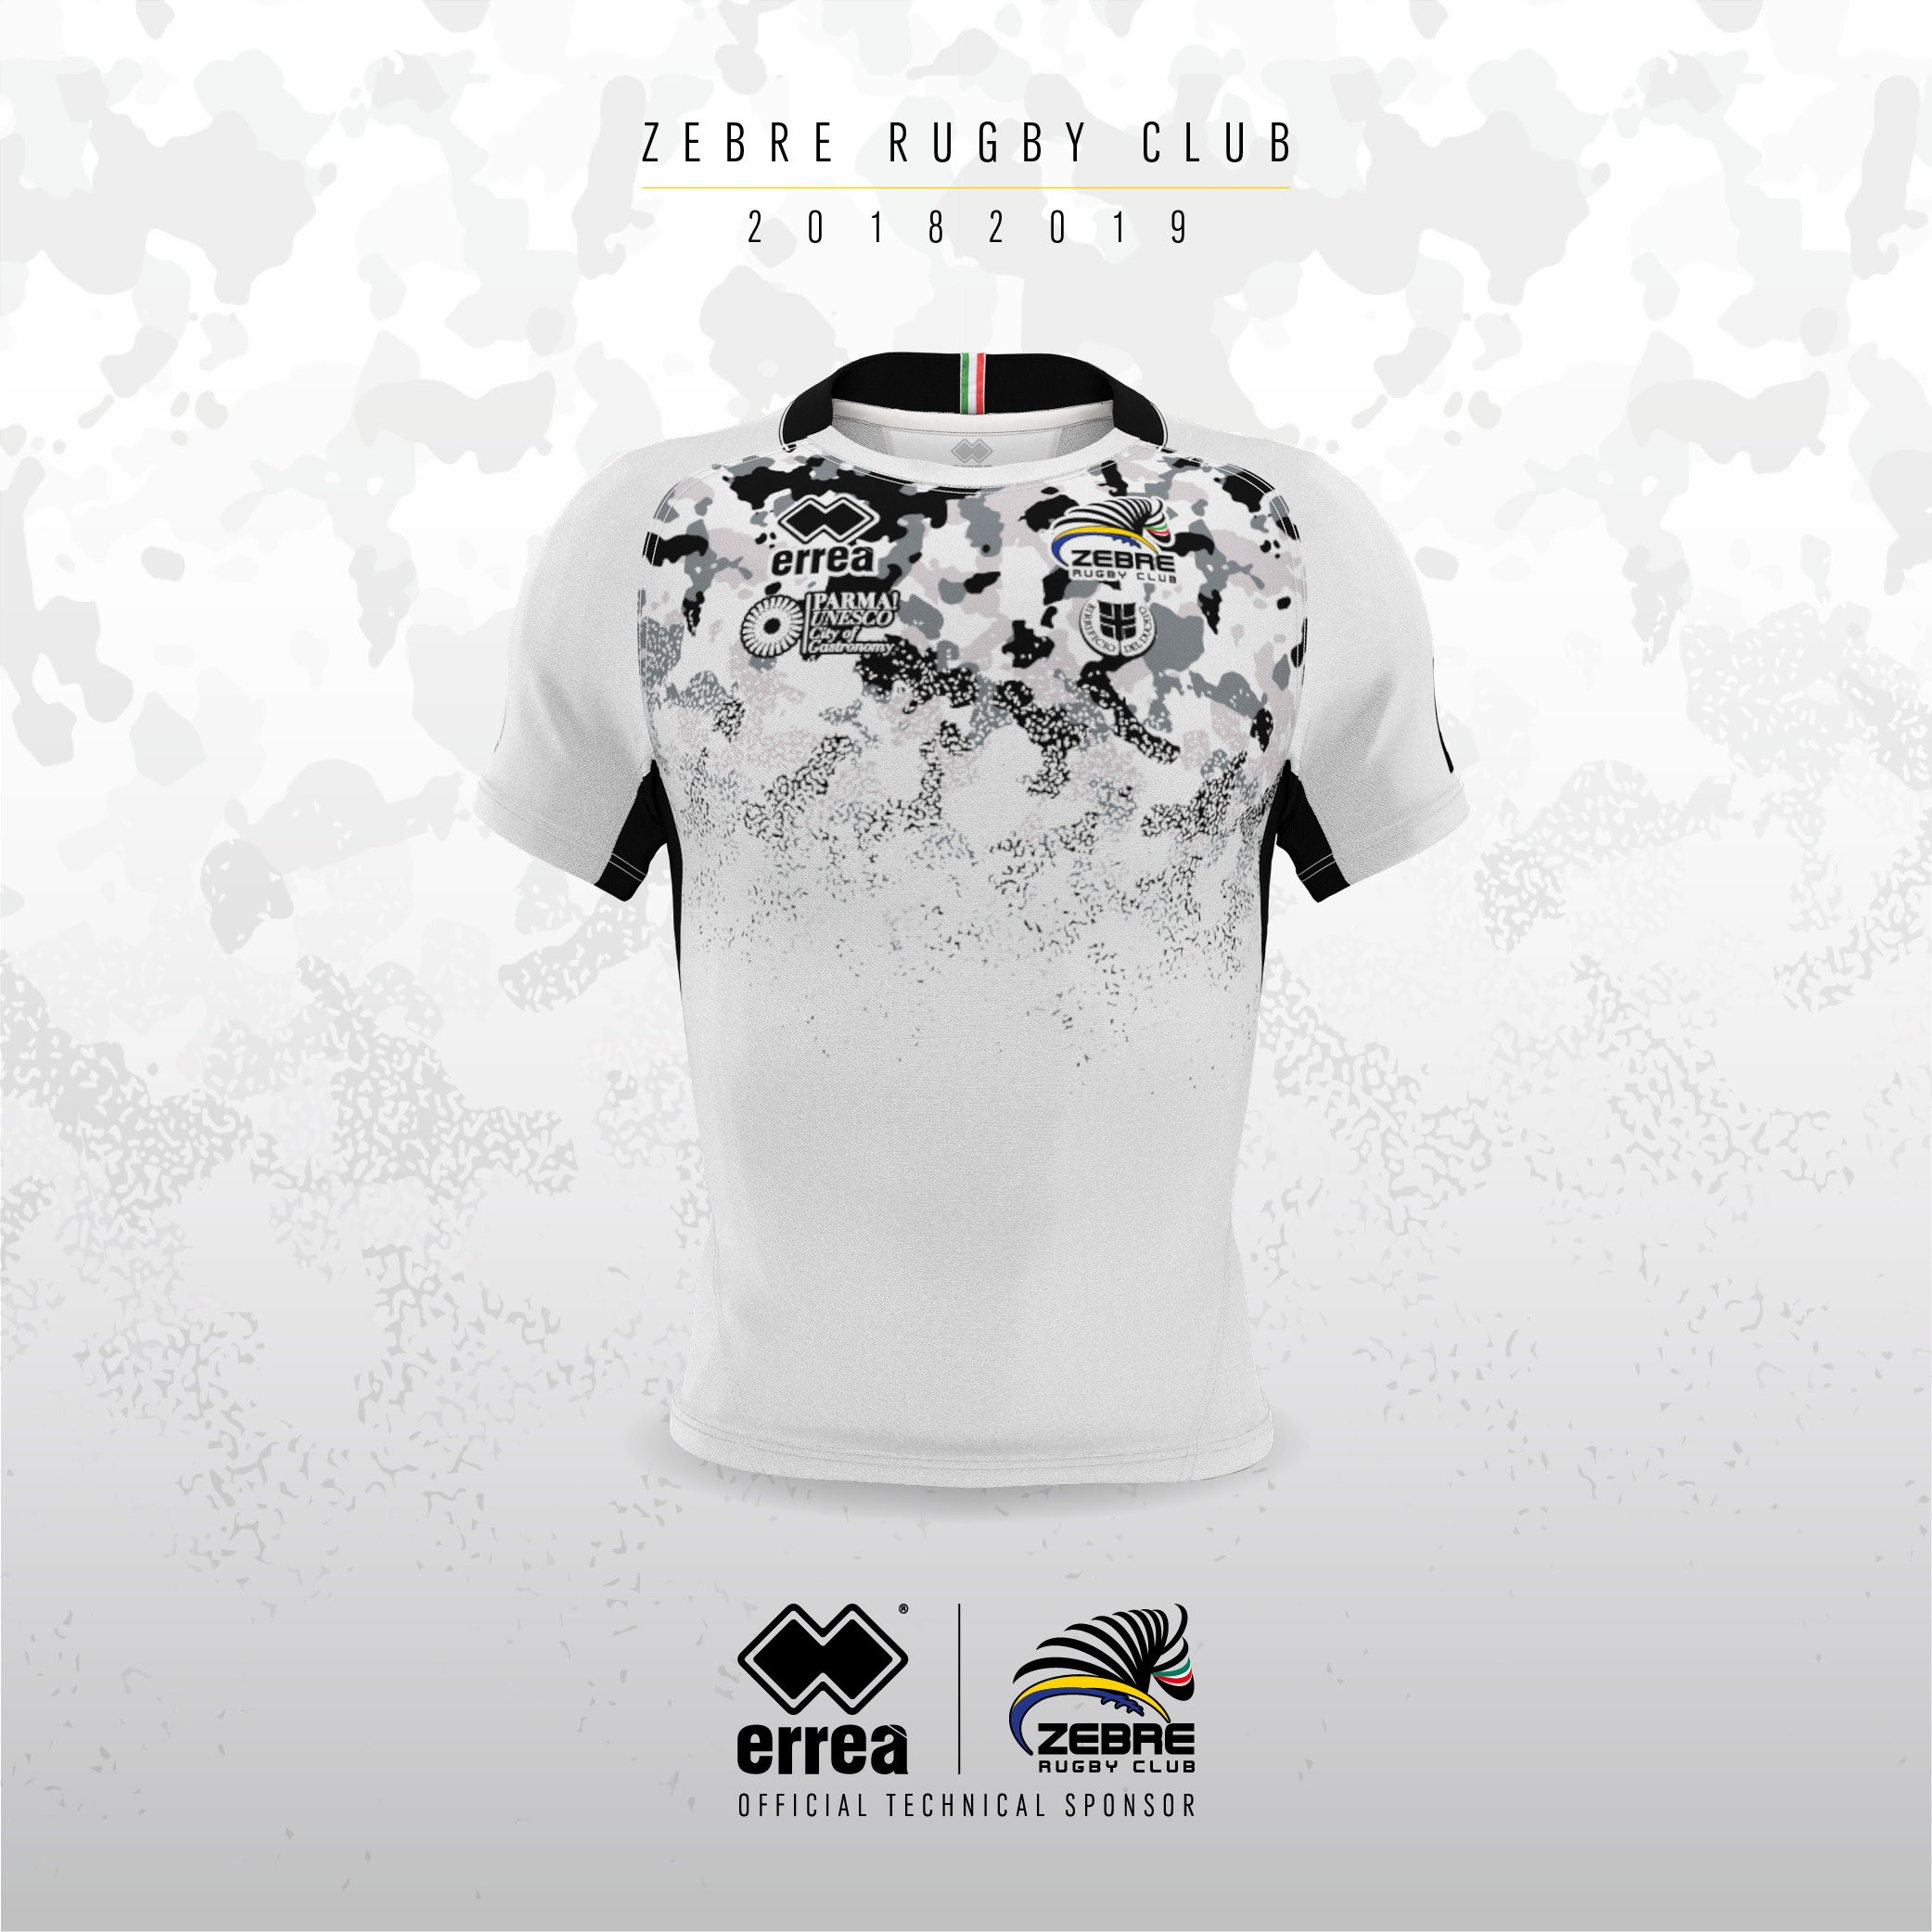 Zebre Rugby Club's new away official kit presented at the Lanfranchi Stadium